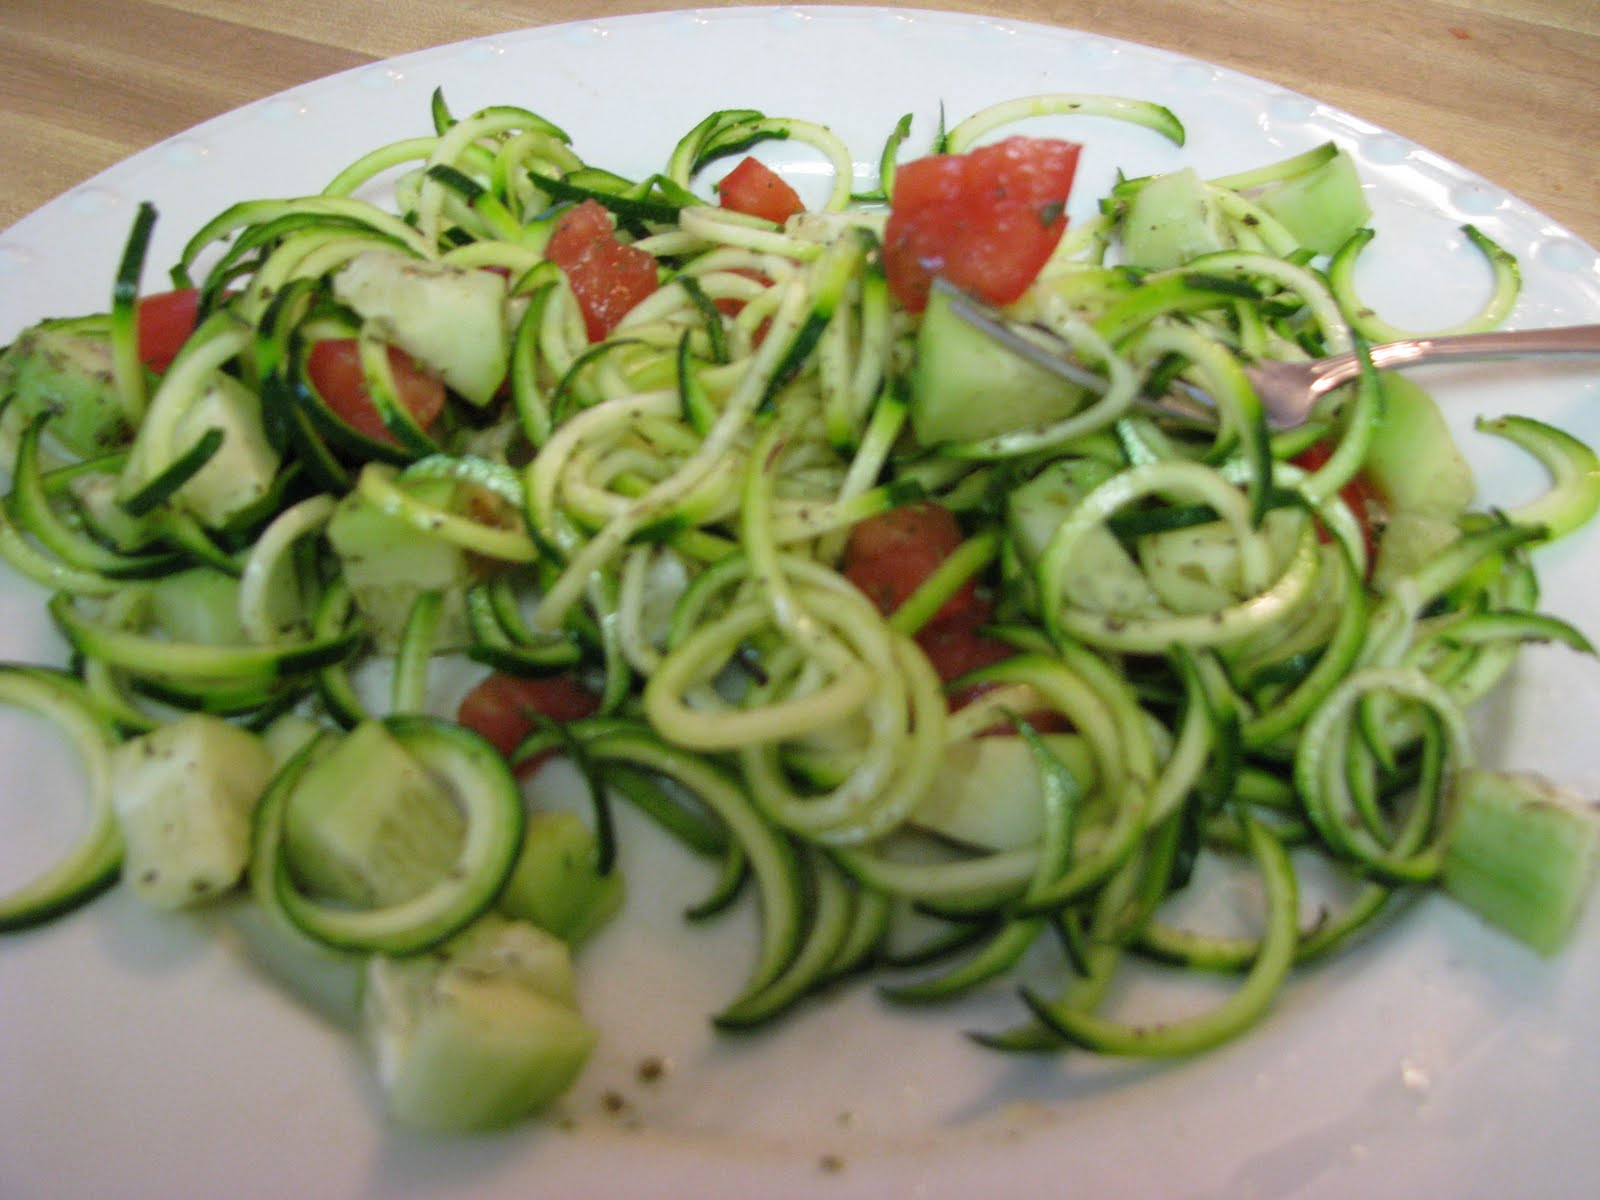 ... greek style zucchini salad recipes dishmaps greek style zucchini salad